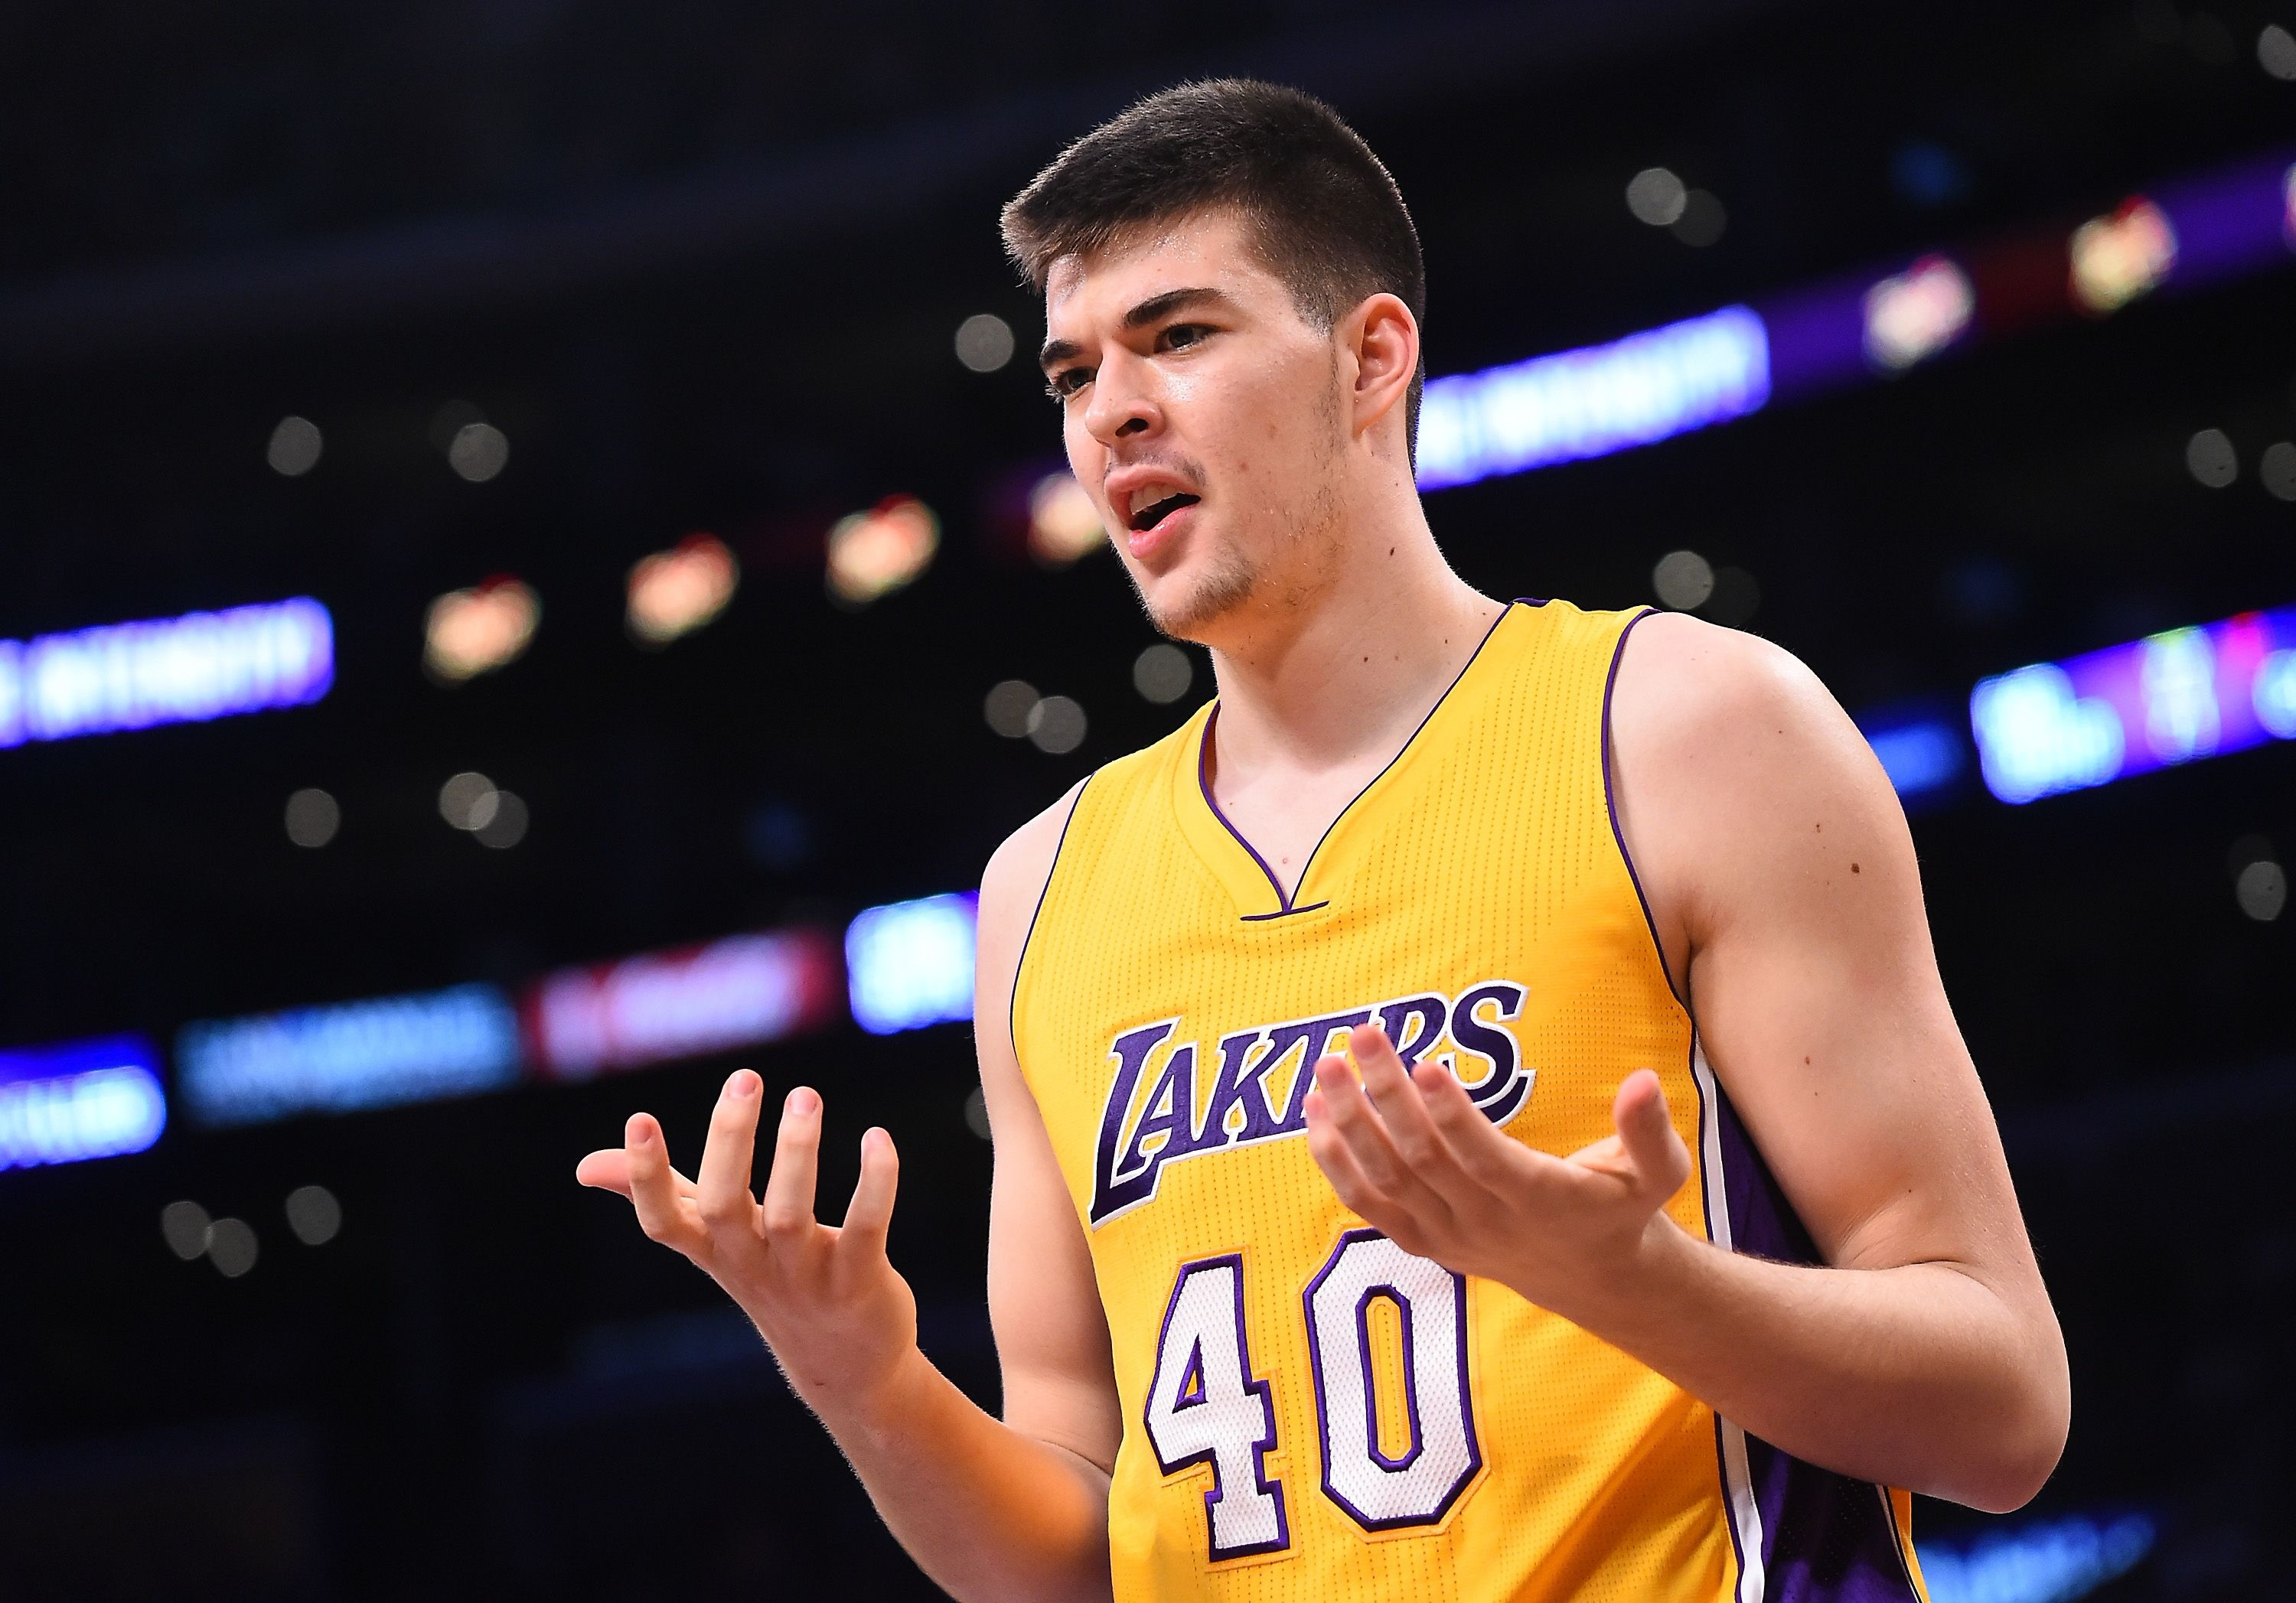 Ivica Zubac with his palms faced towards himself, he's wearing his Lakers jersey